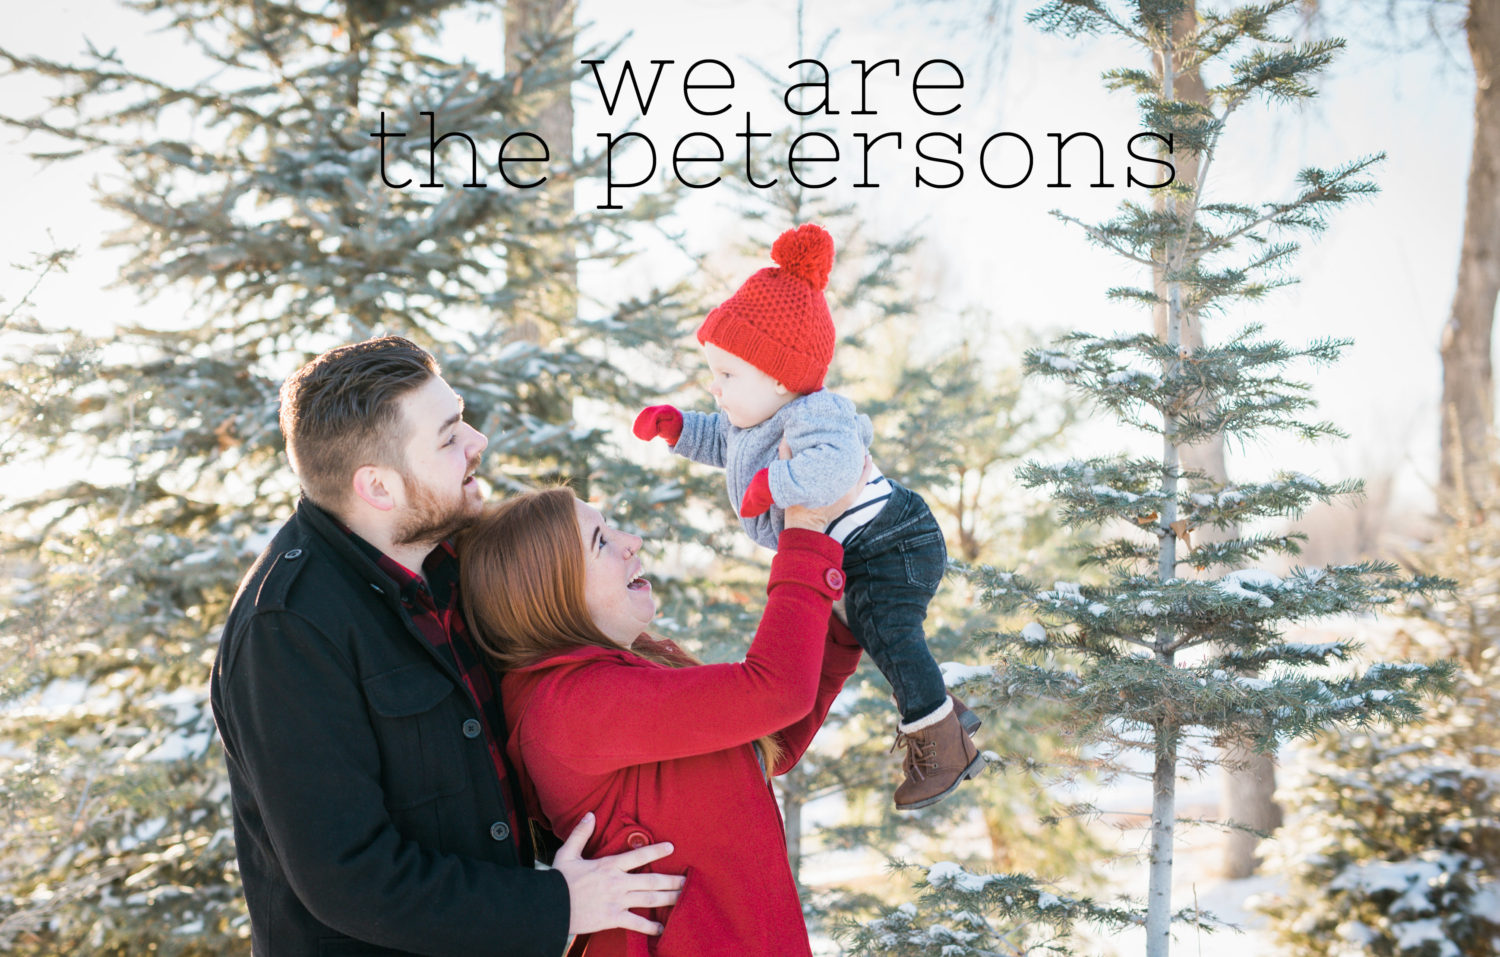 We Are The Peterson's